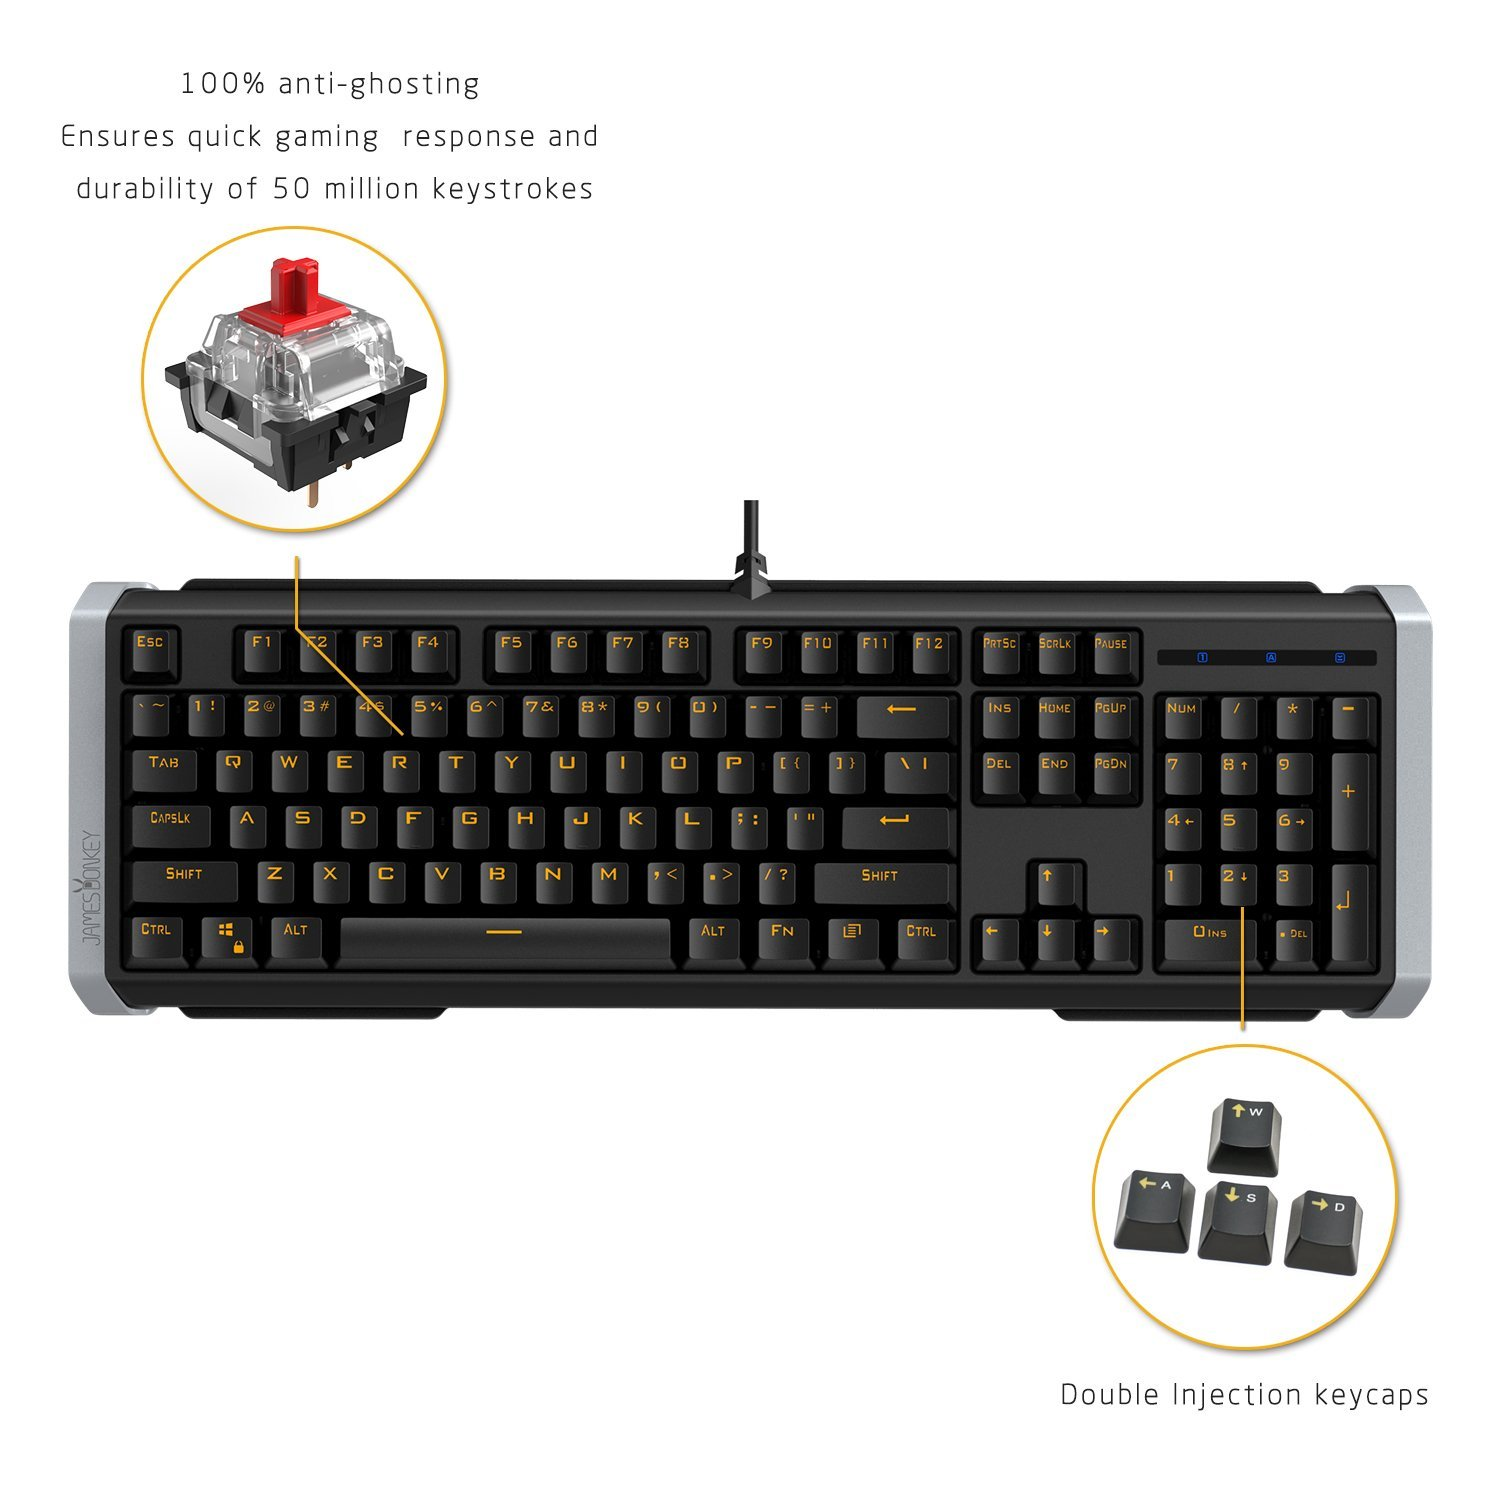 James Donkey Mechanical Gaming Keyboard,Yellow LED Backlit Anti-Gosting USB Wired keyboard for Computer PC Mac Laptop Tablet Gamer CS LOL (Black+Red Switch)